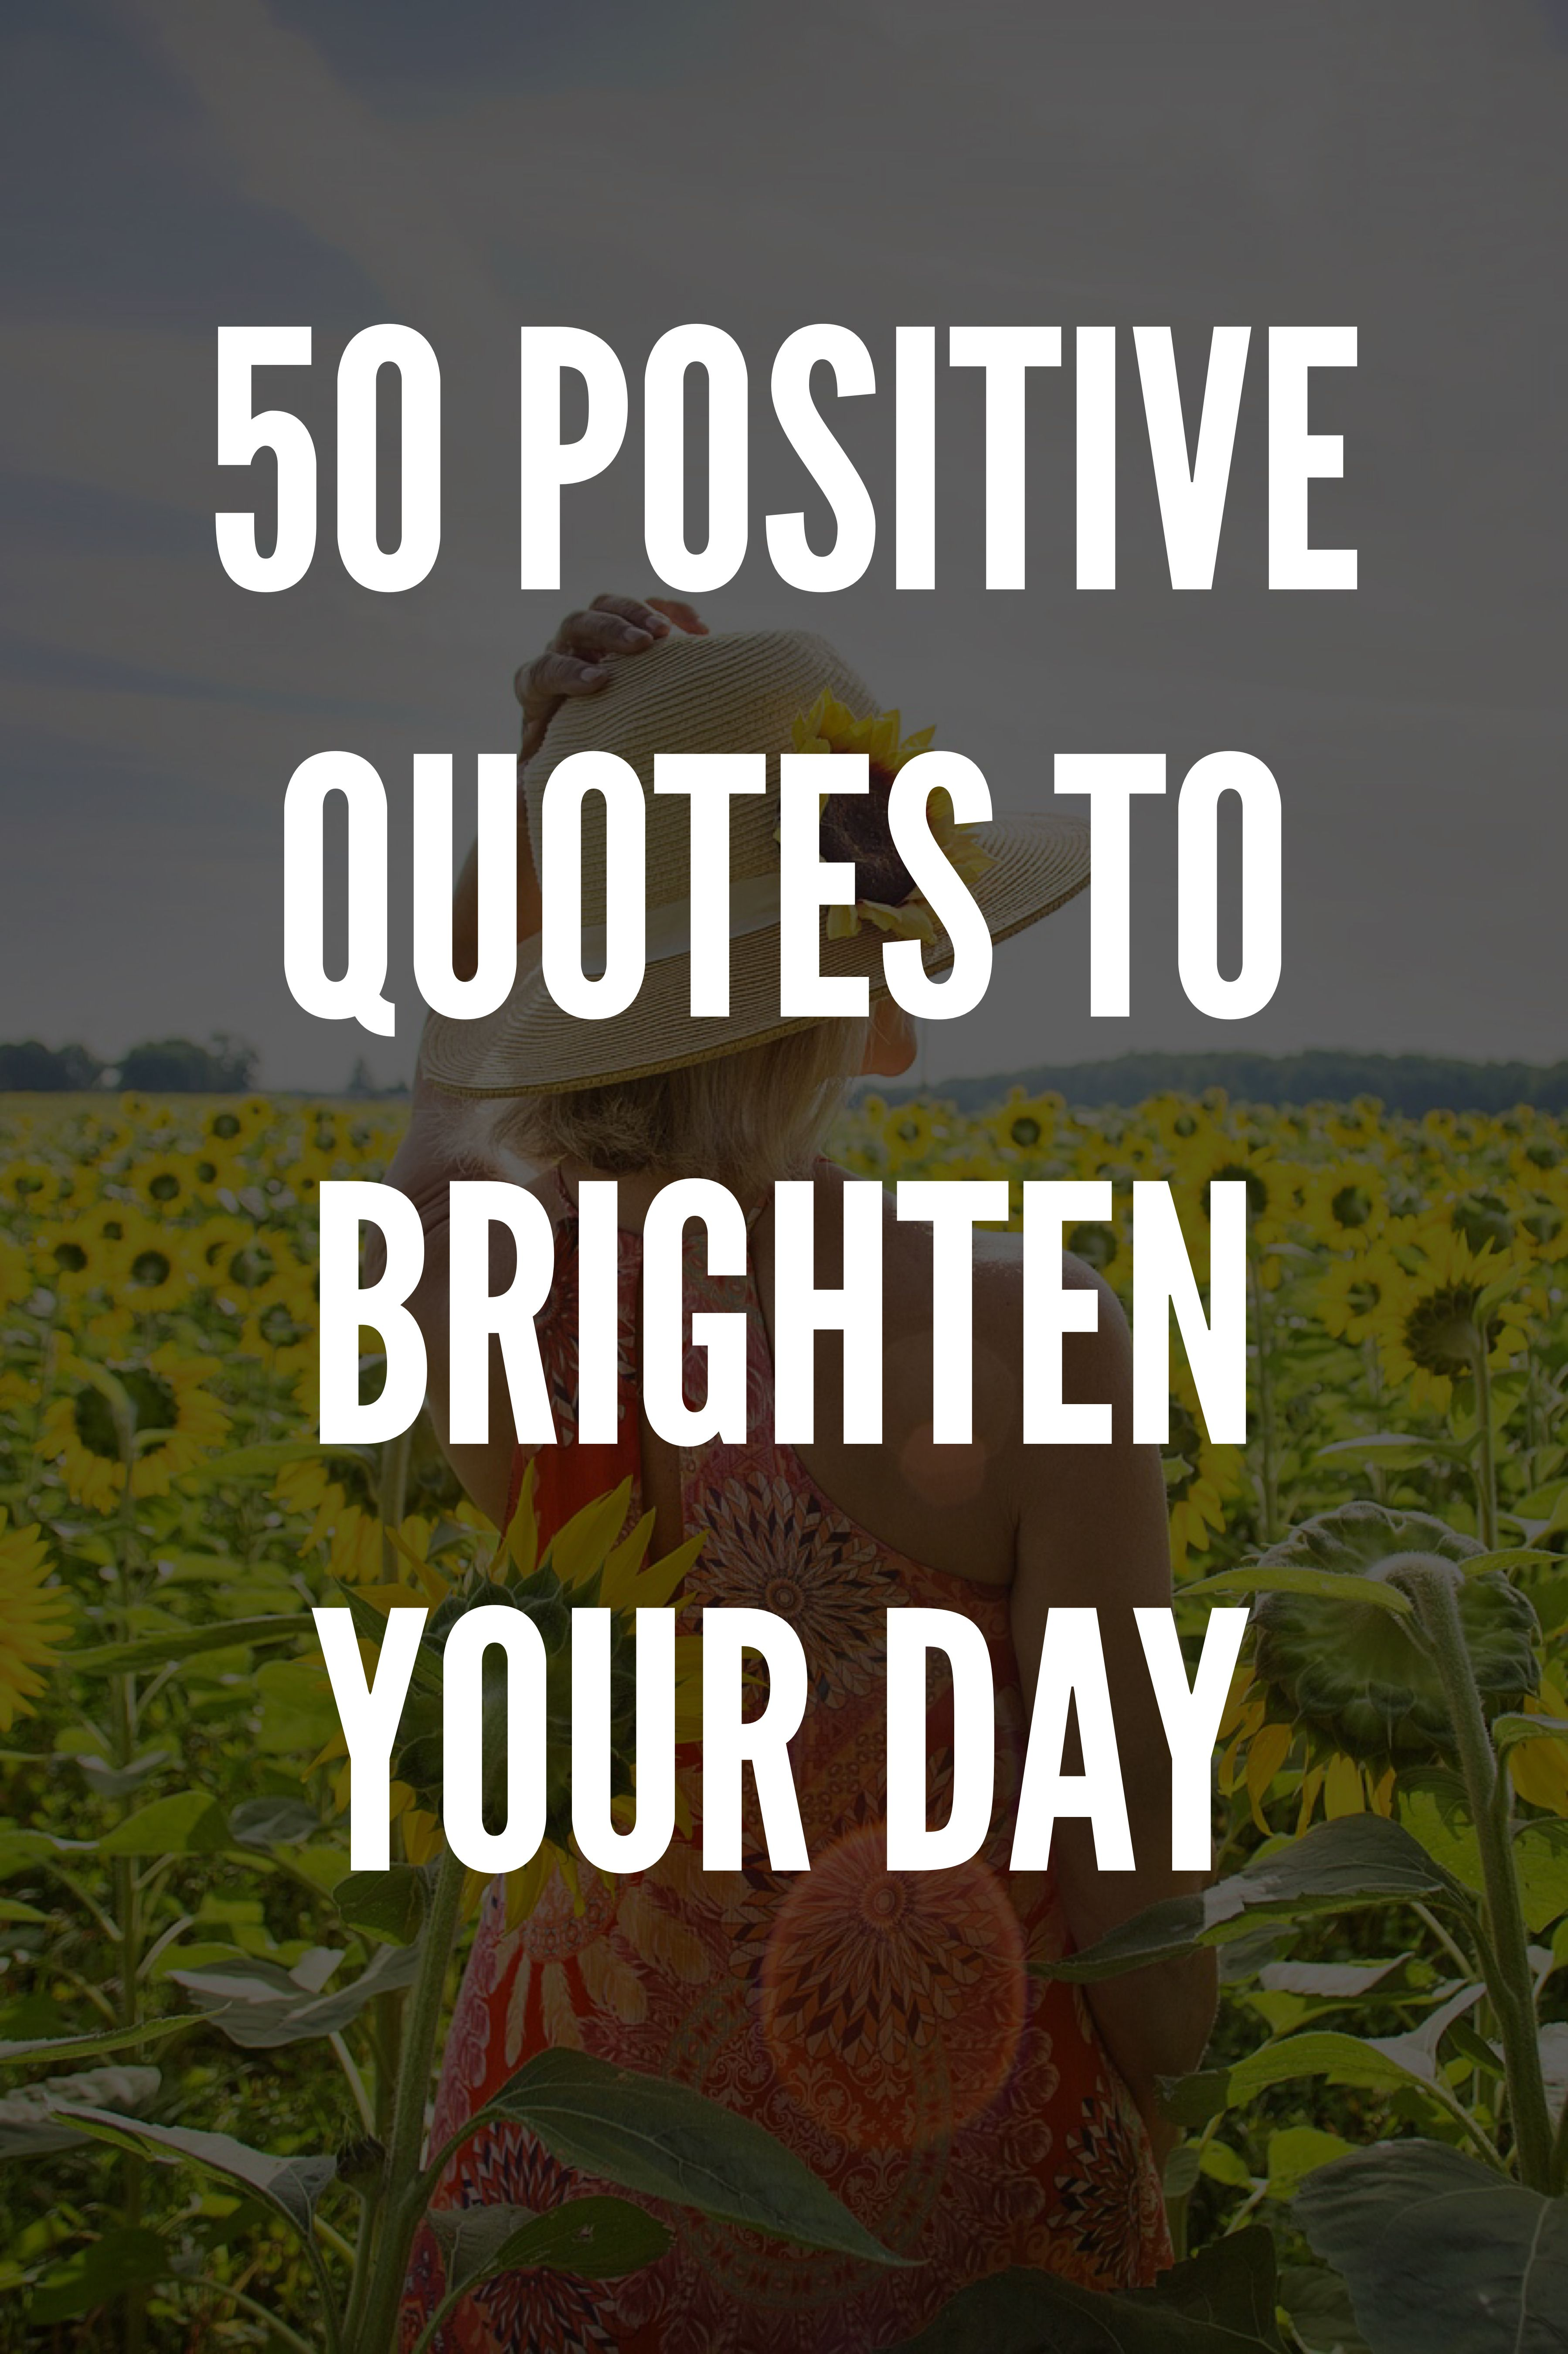 50 Positive Quotes To Brighten Your Day